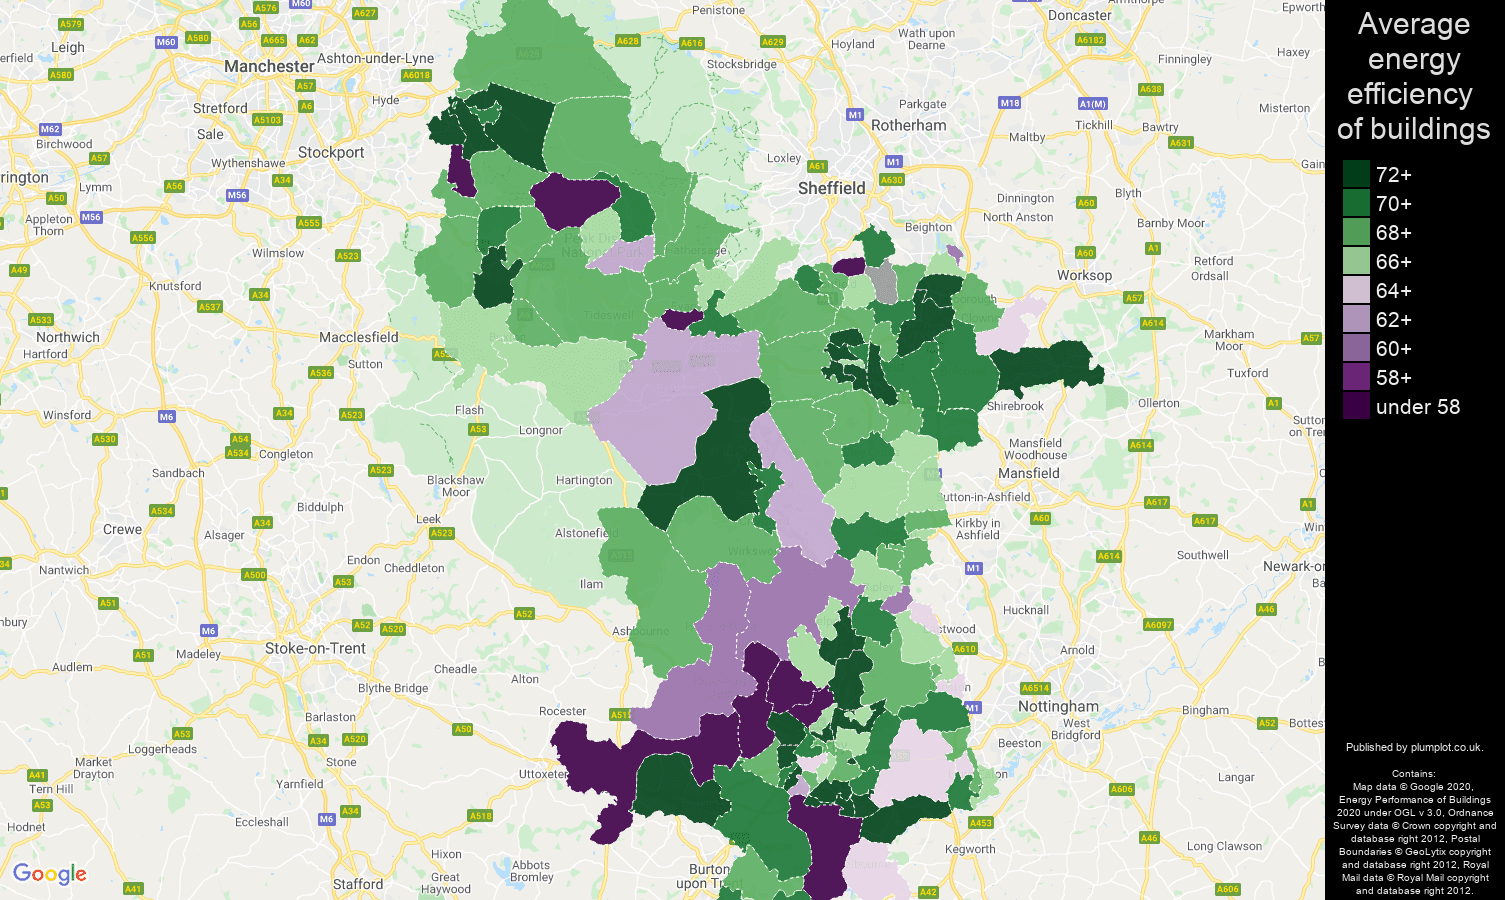 Derbyshire map of energy efficiency of flats